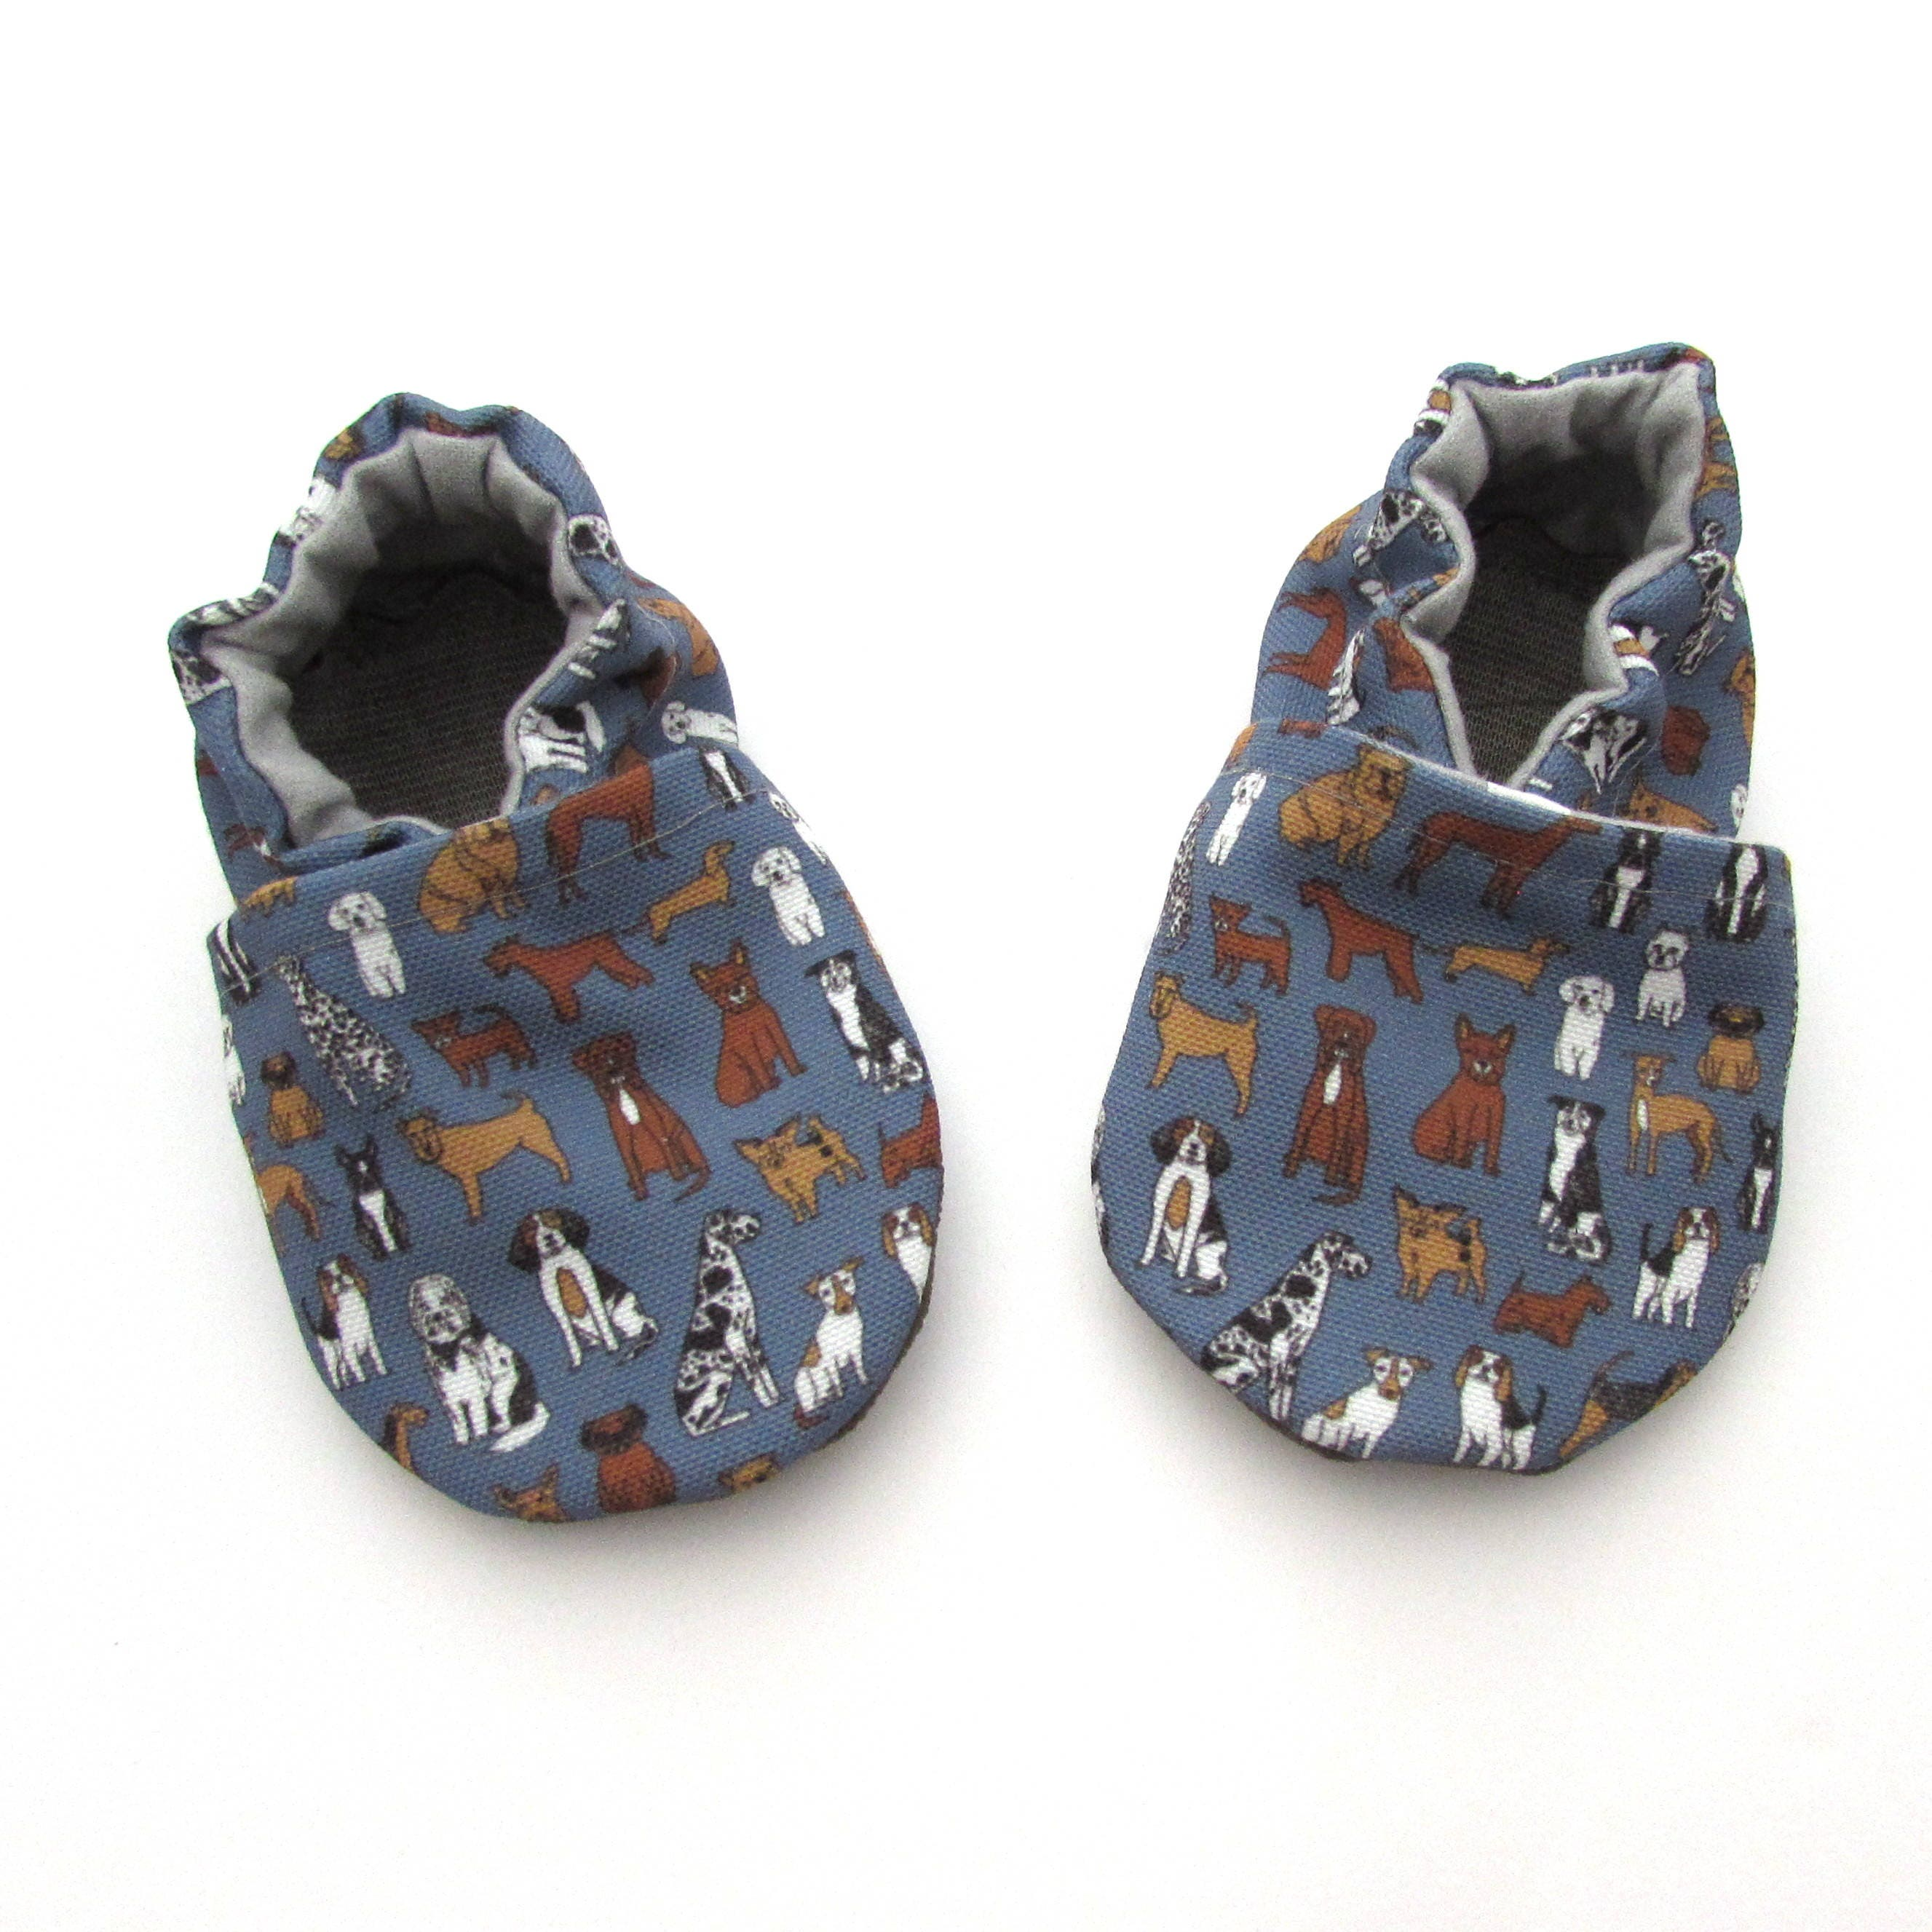 7a2ea1cf3f64 Dog Baby Shoes    Blue Eco-Canvas Baby Booties Gender Neutral